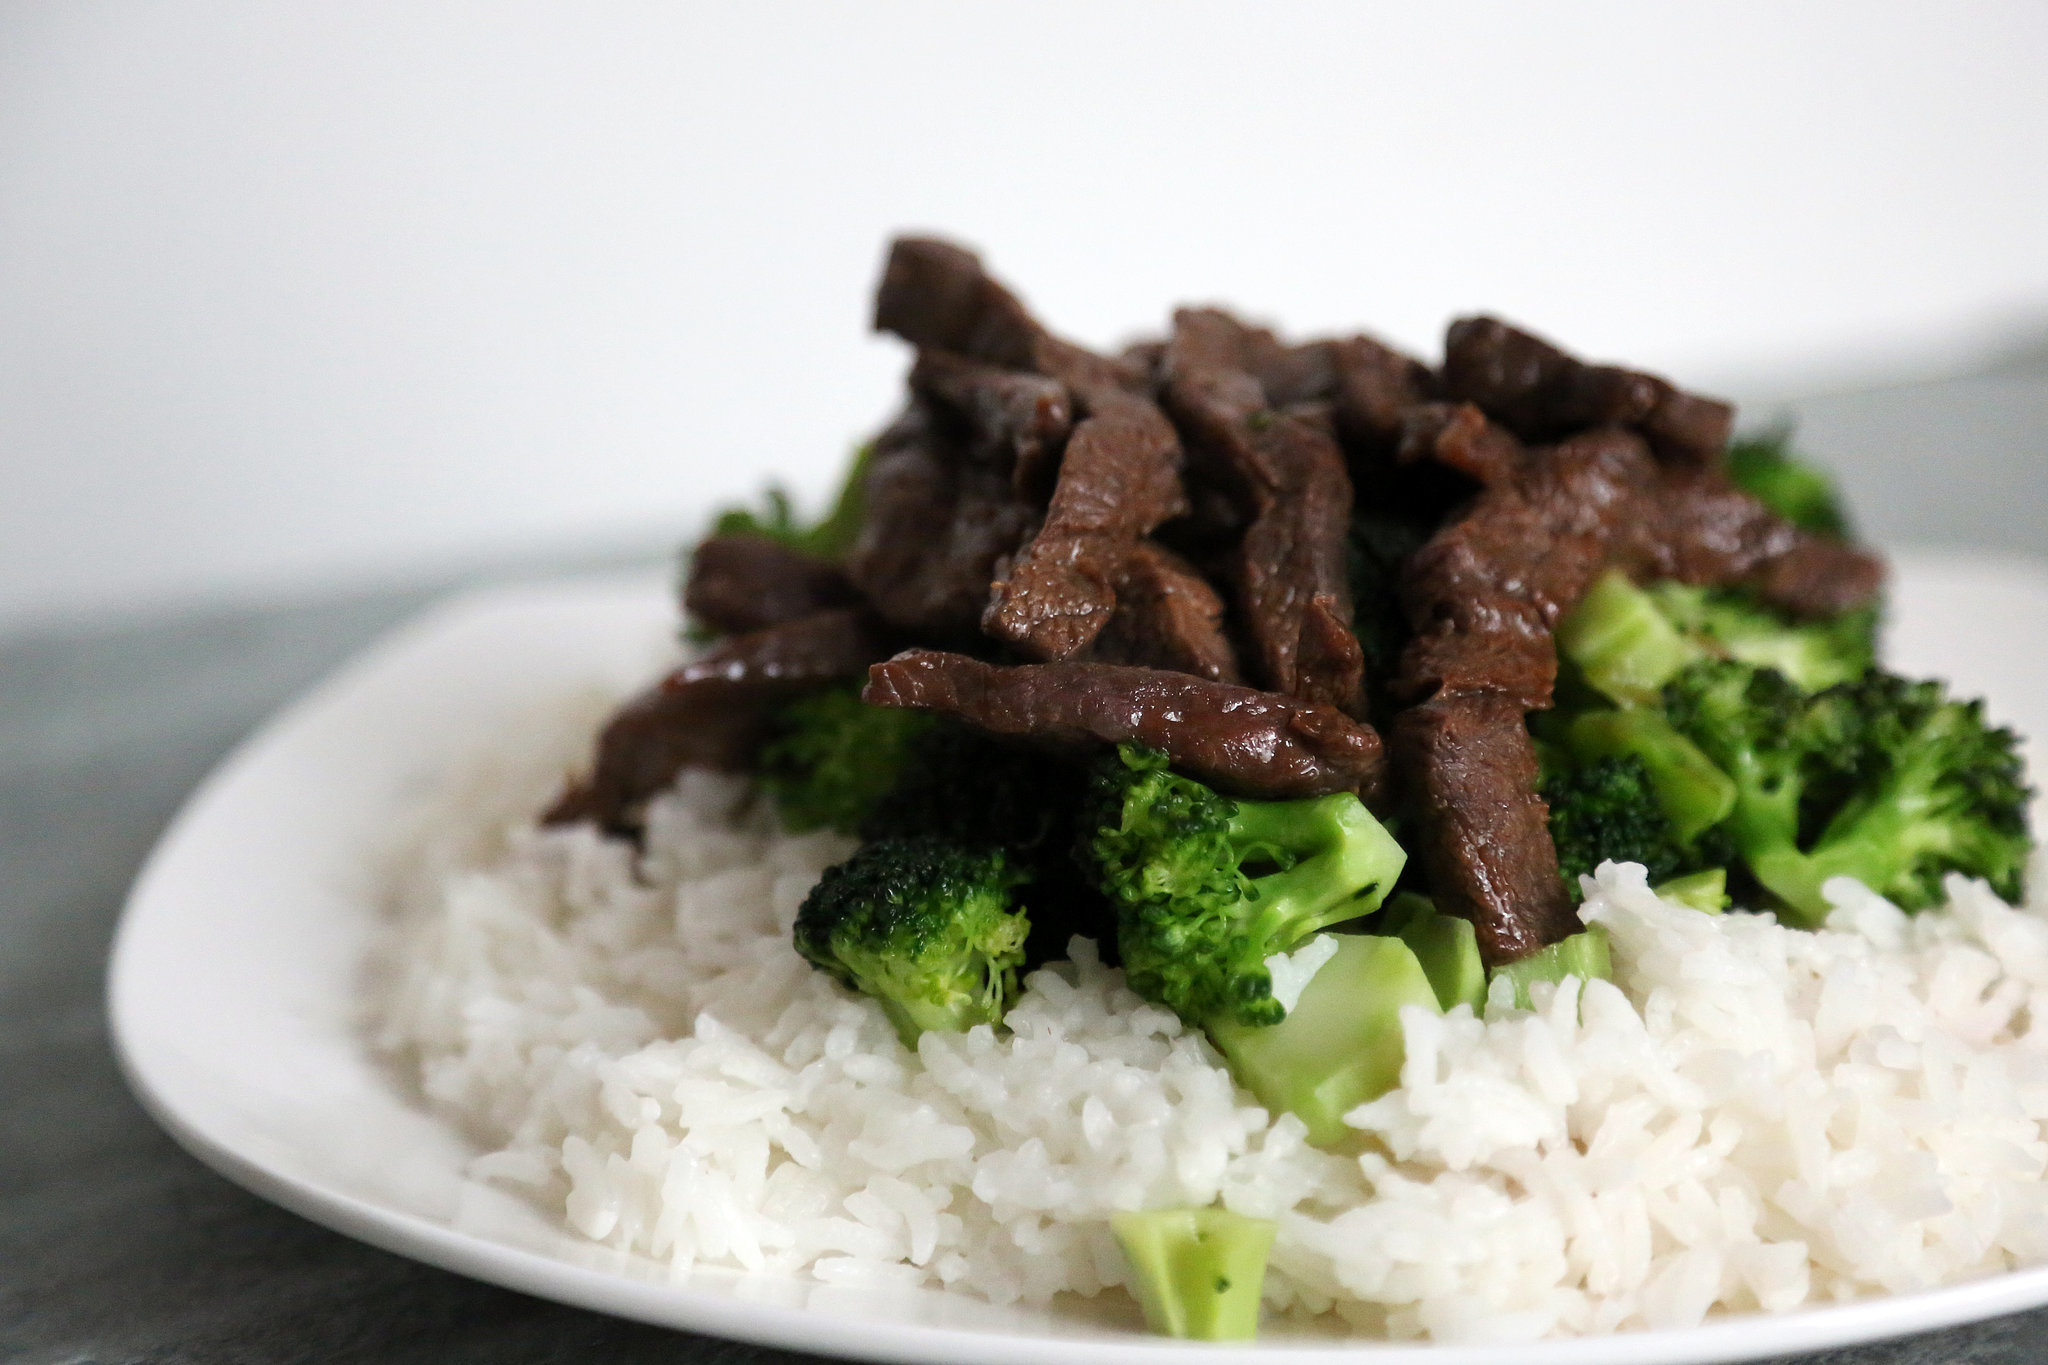 Beef and broccoli stir fry popsugar food share this link forumfinder Choice Image